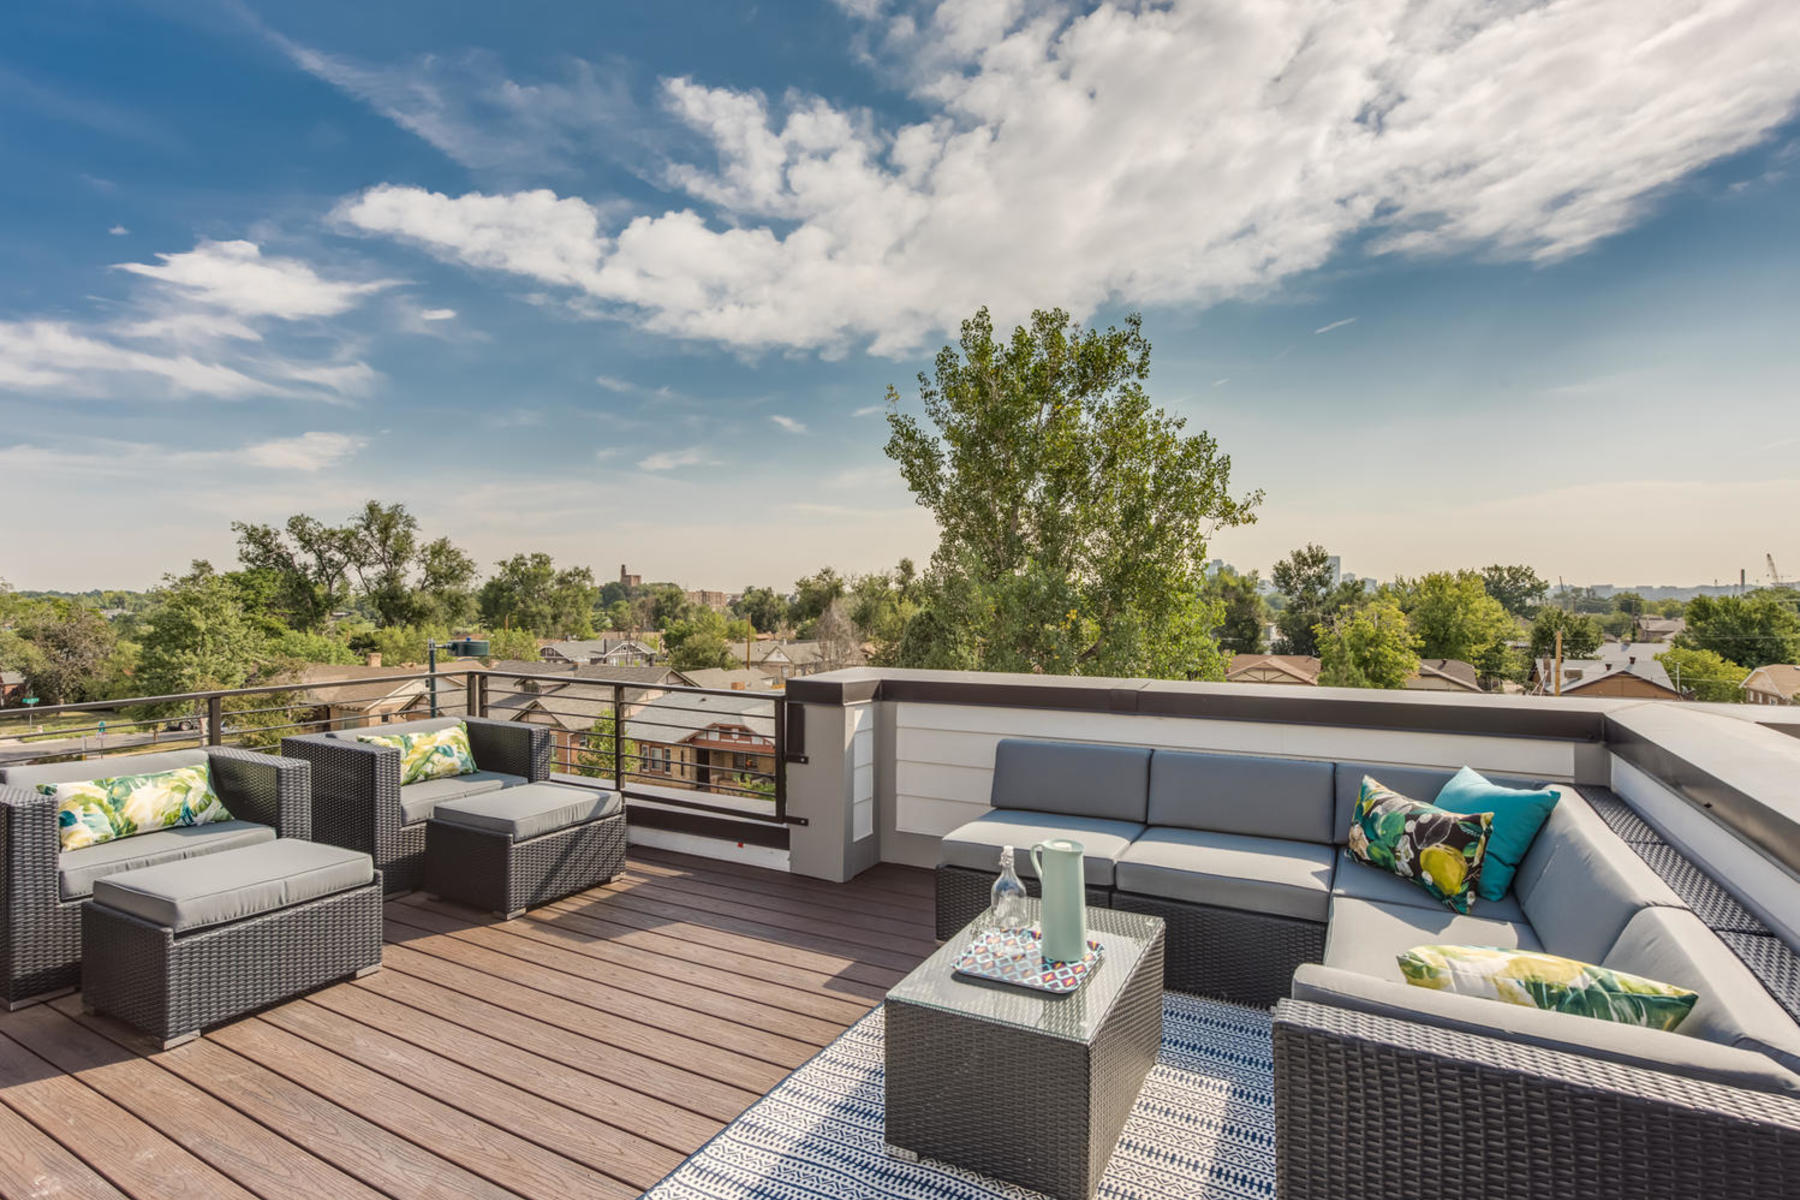 Townhouse for Active at SPROCKET DESIGNED TOWNHOMES FEATURING EXPANSIVE ROOFTOP DECK 1594 Quitman St Denver, Colorado 80204 United States